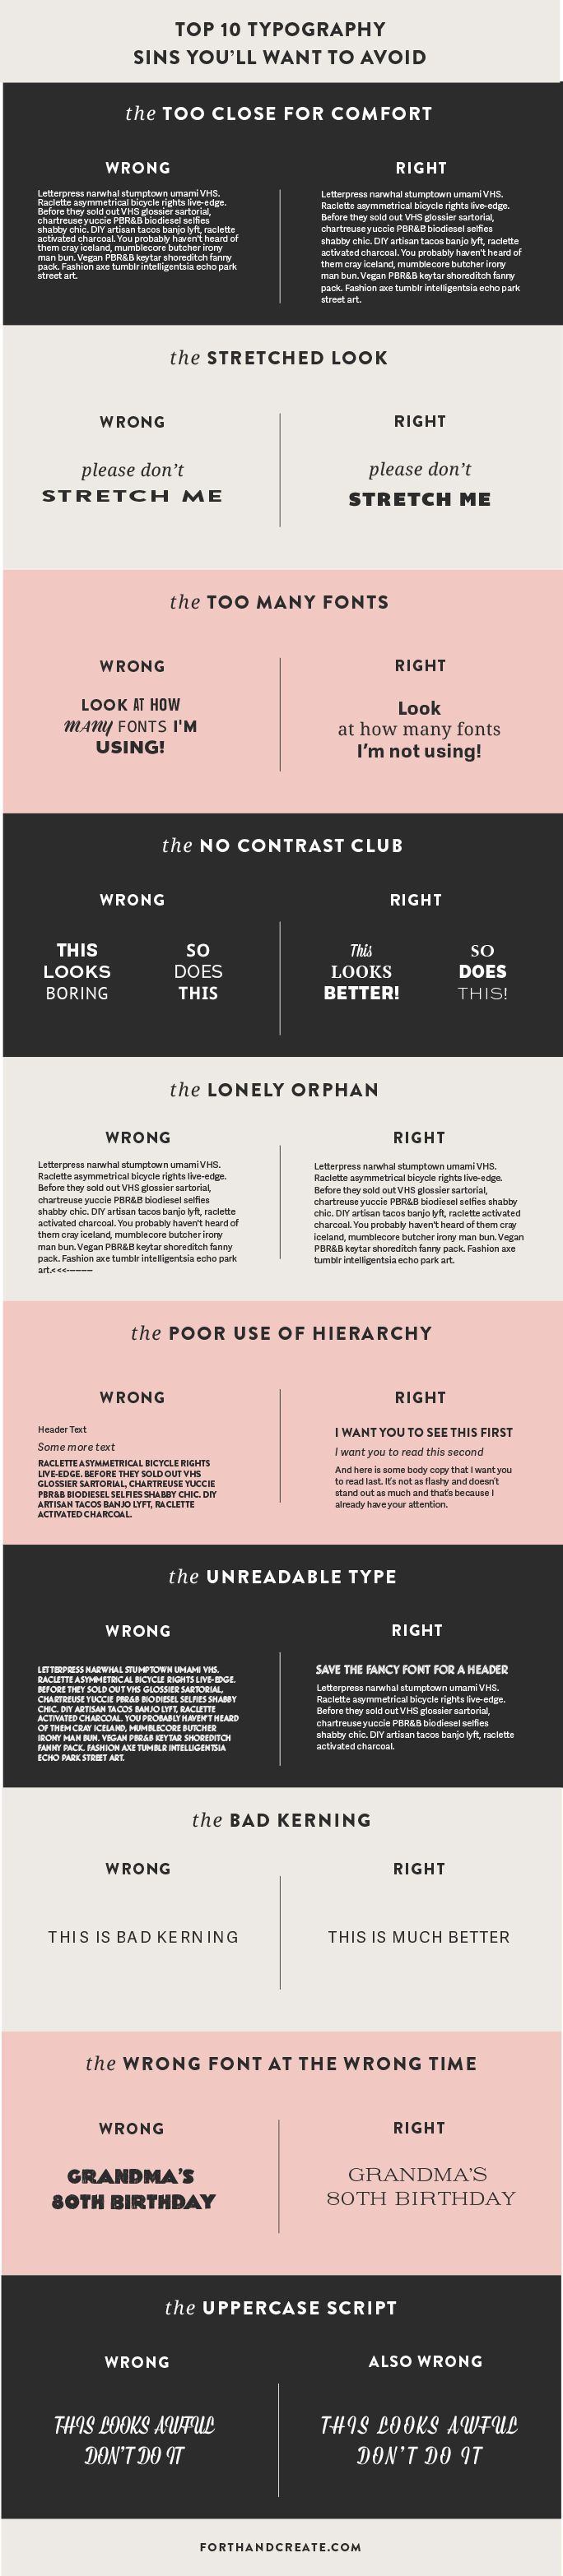 The top 10 typography sins you'll want to avoid. Click through to learn more.